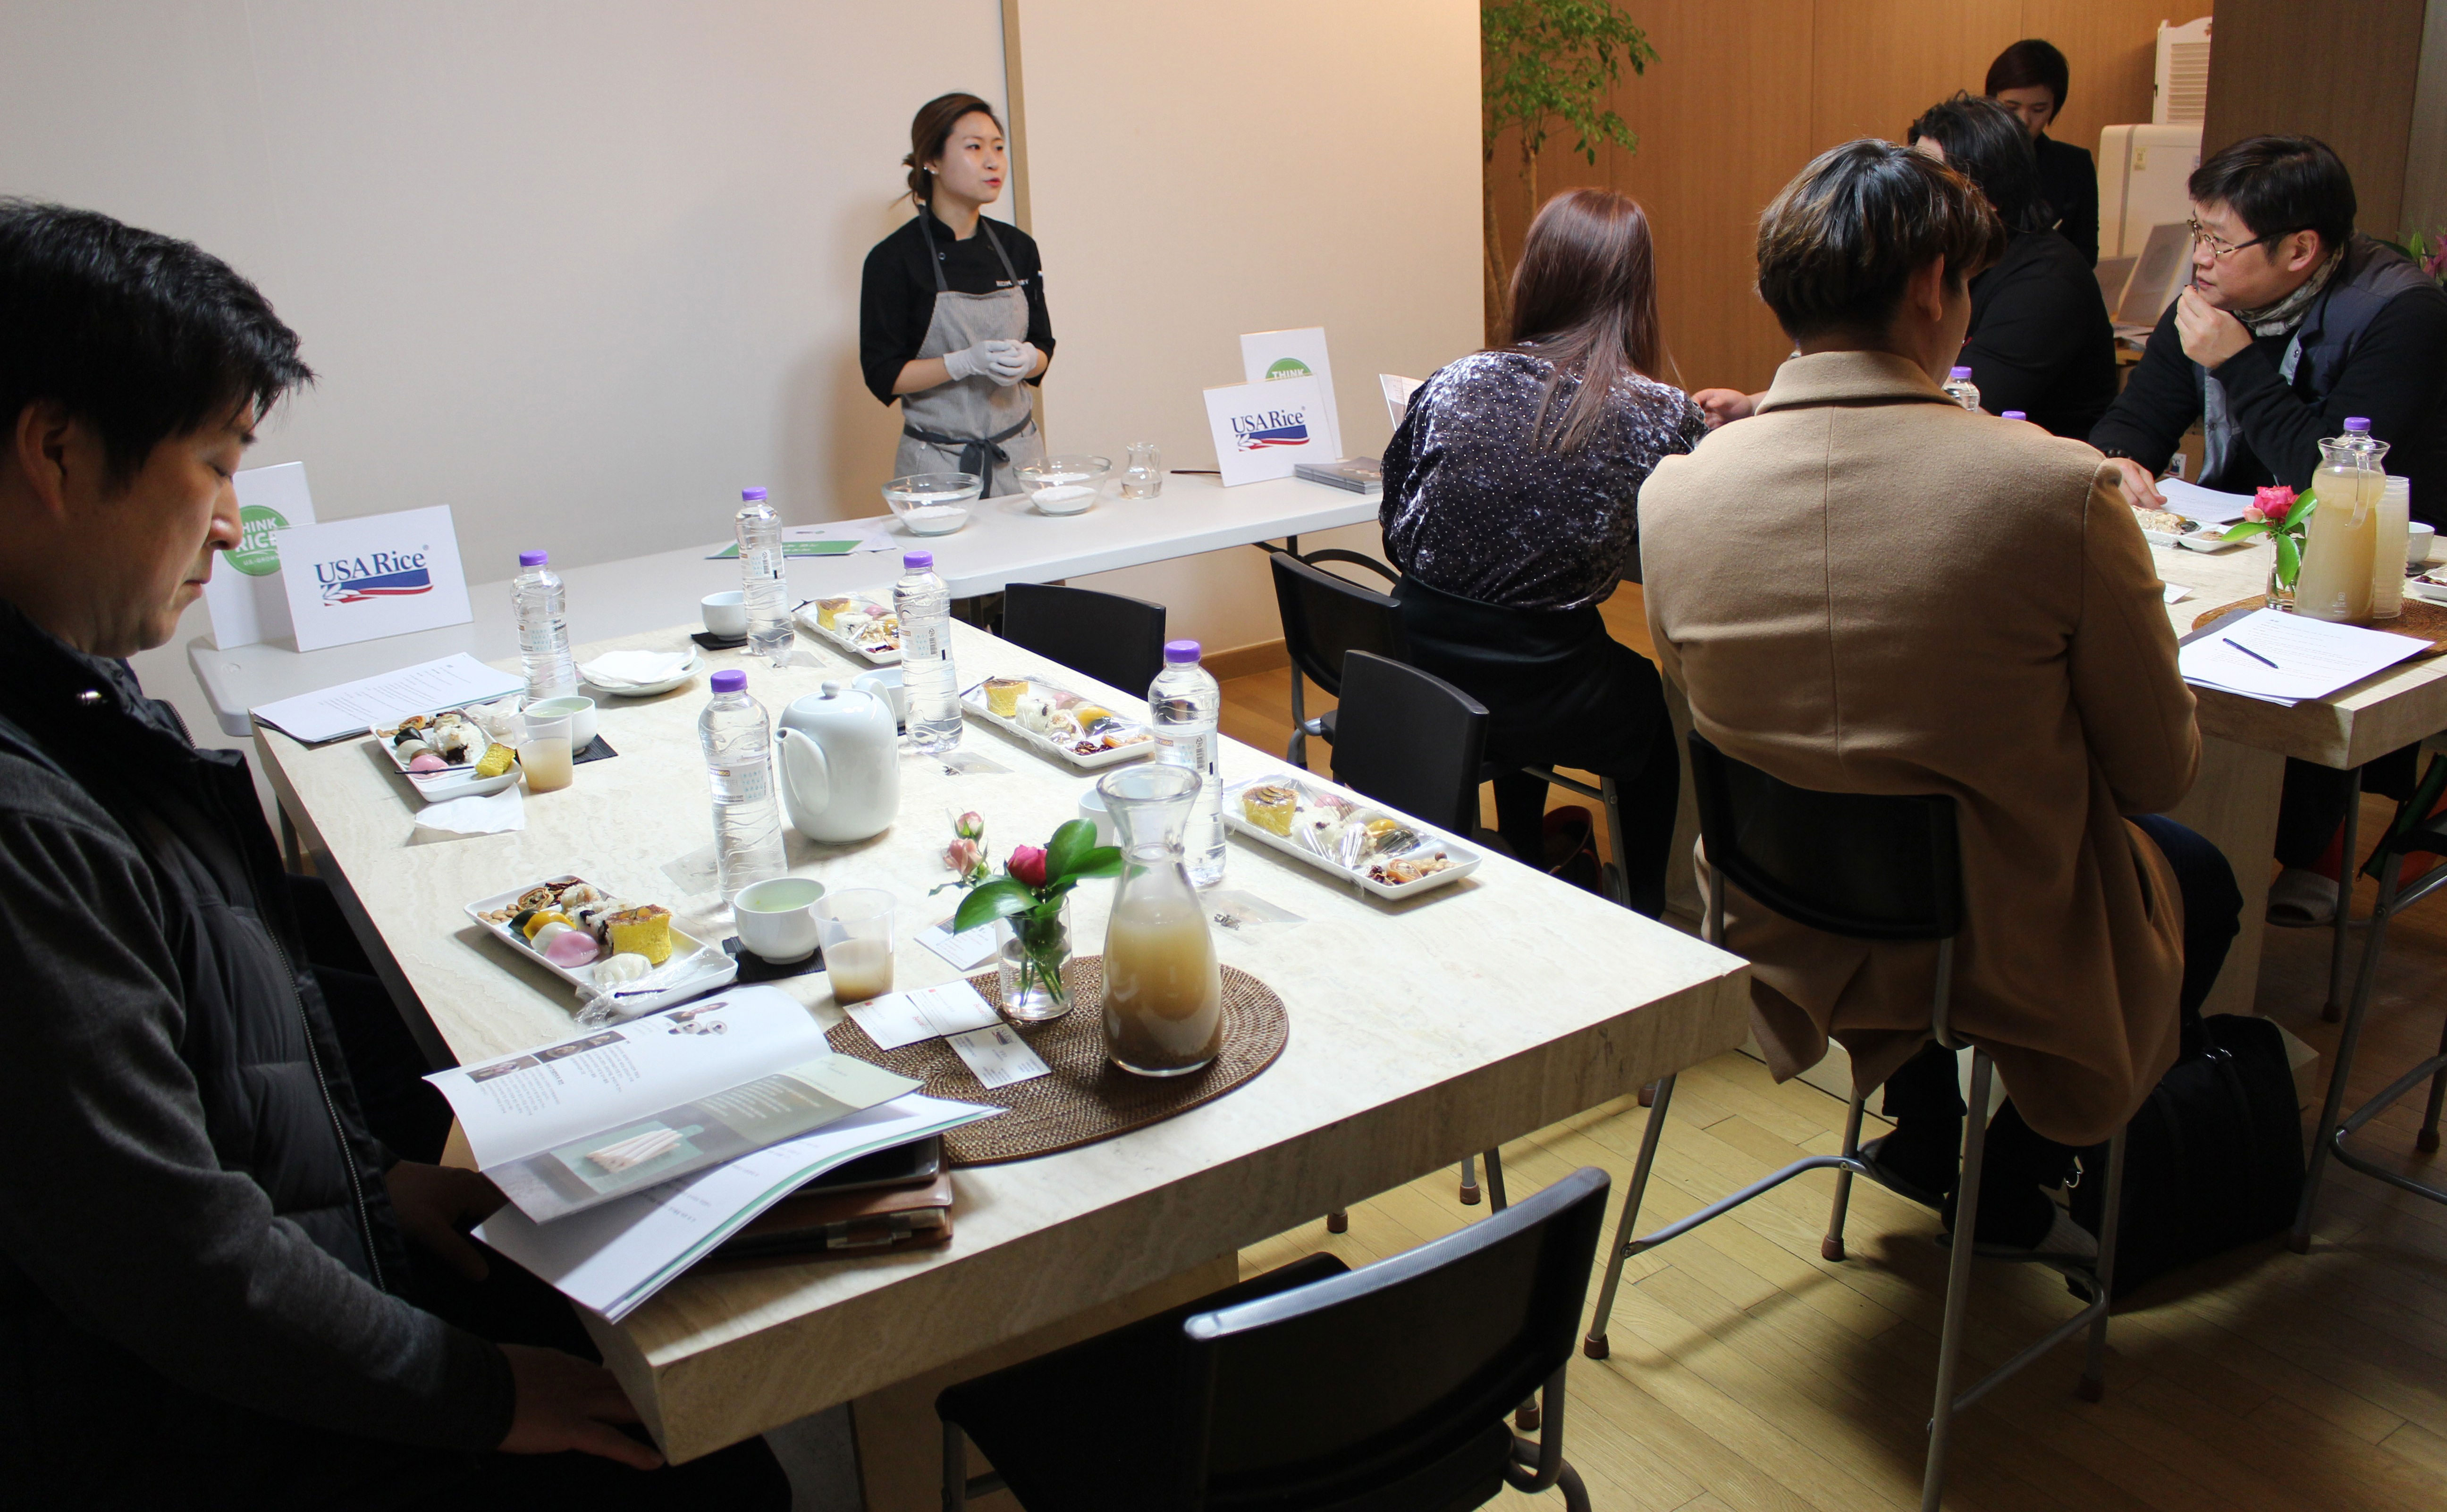 Female chef gives cooking seminar for participants at tables filled with ingredients